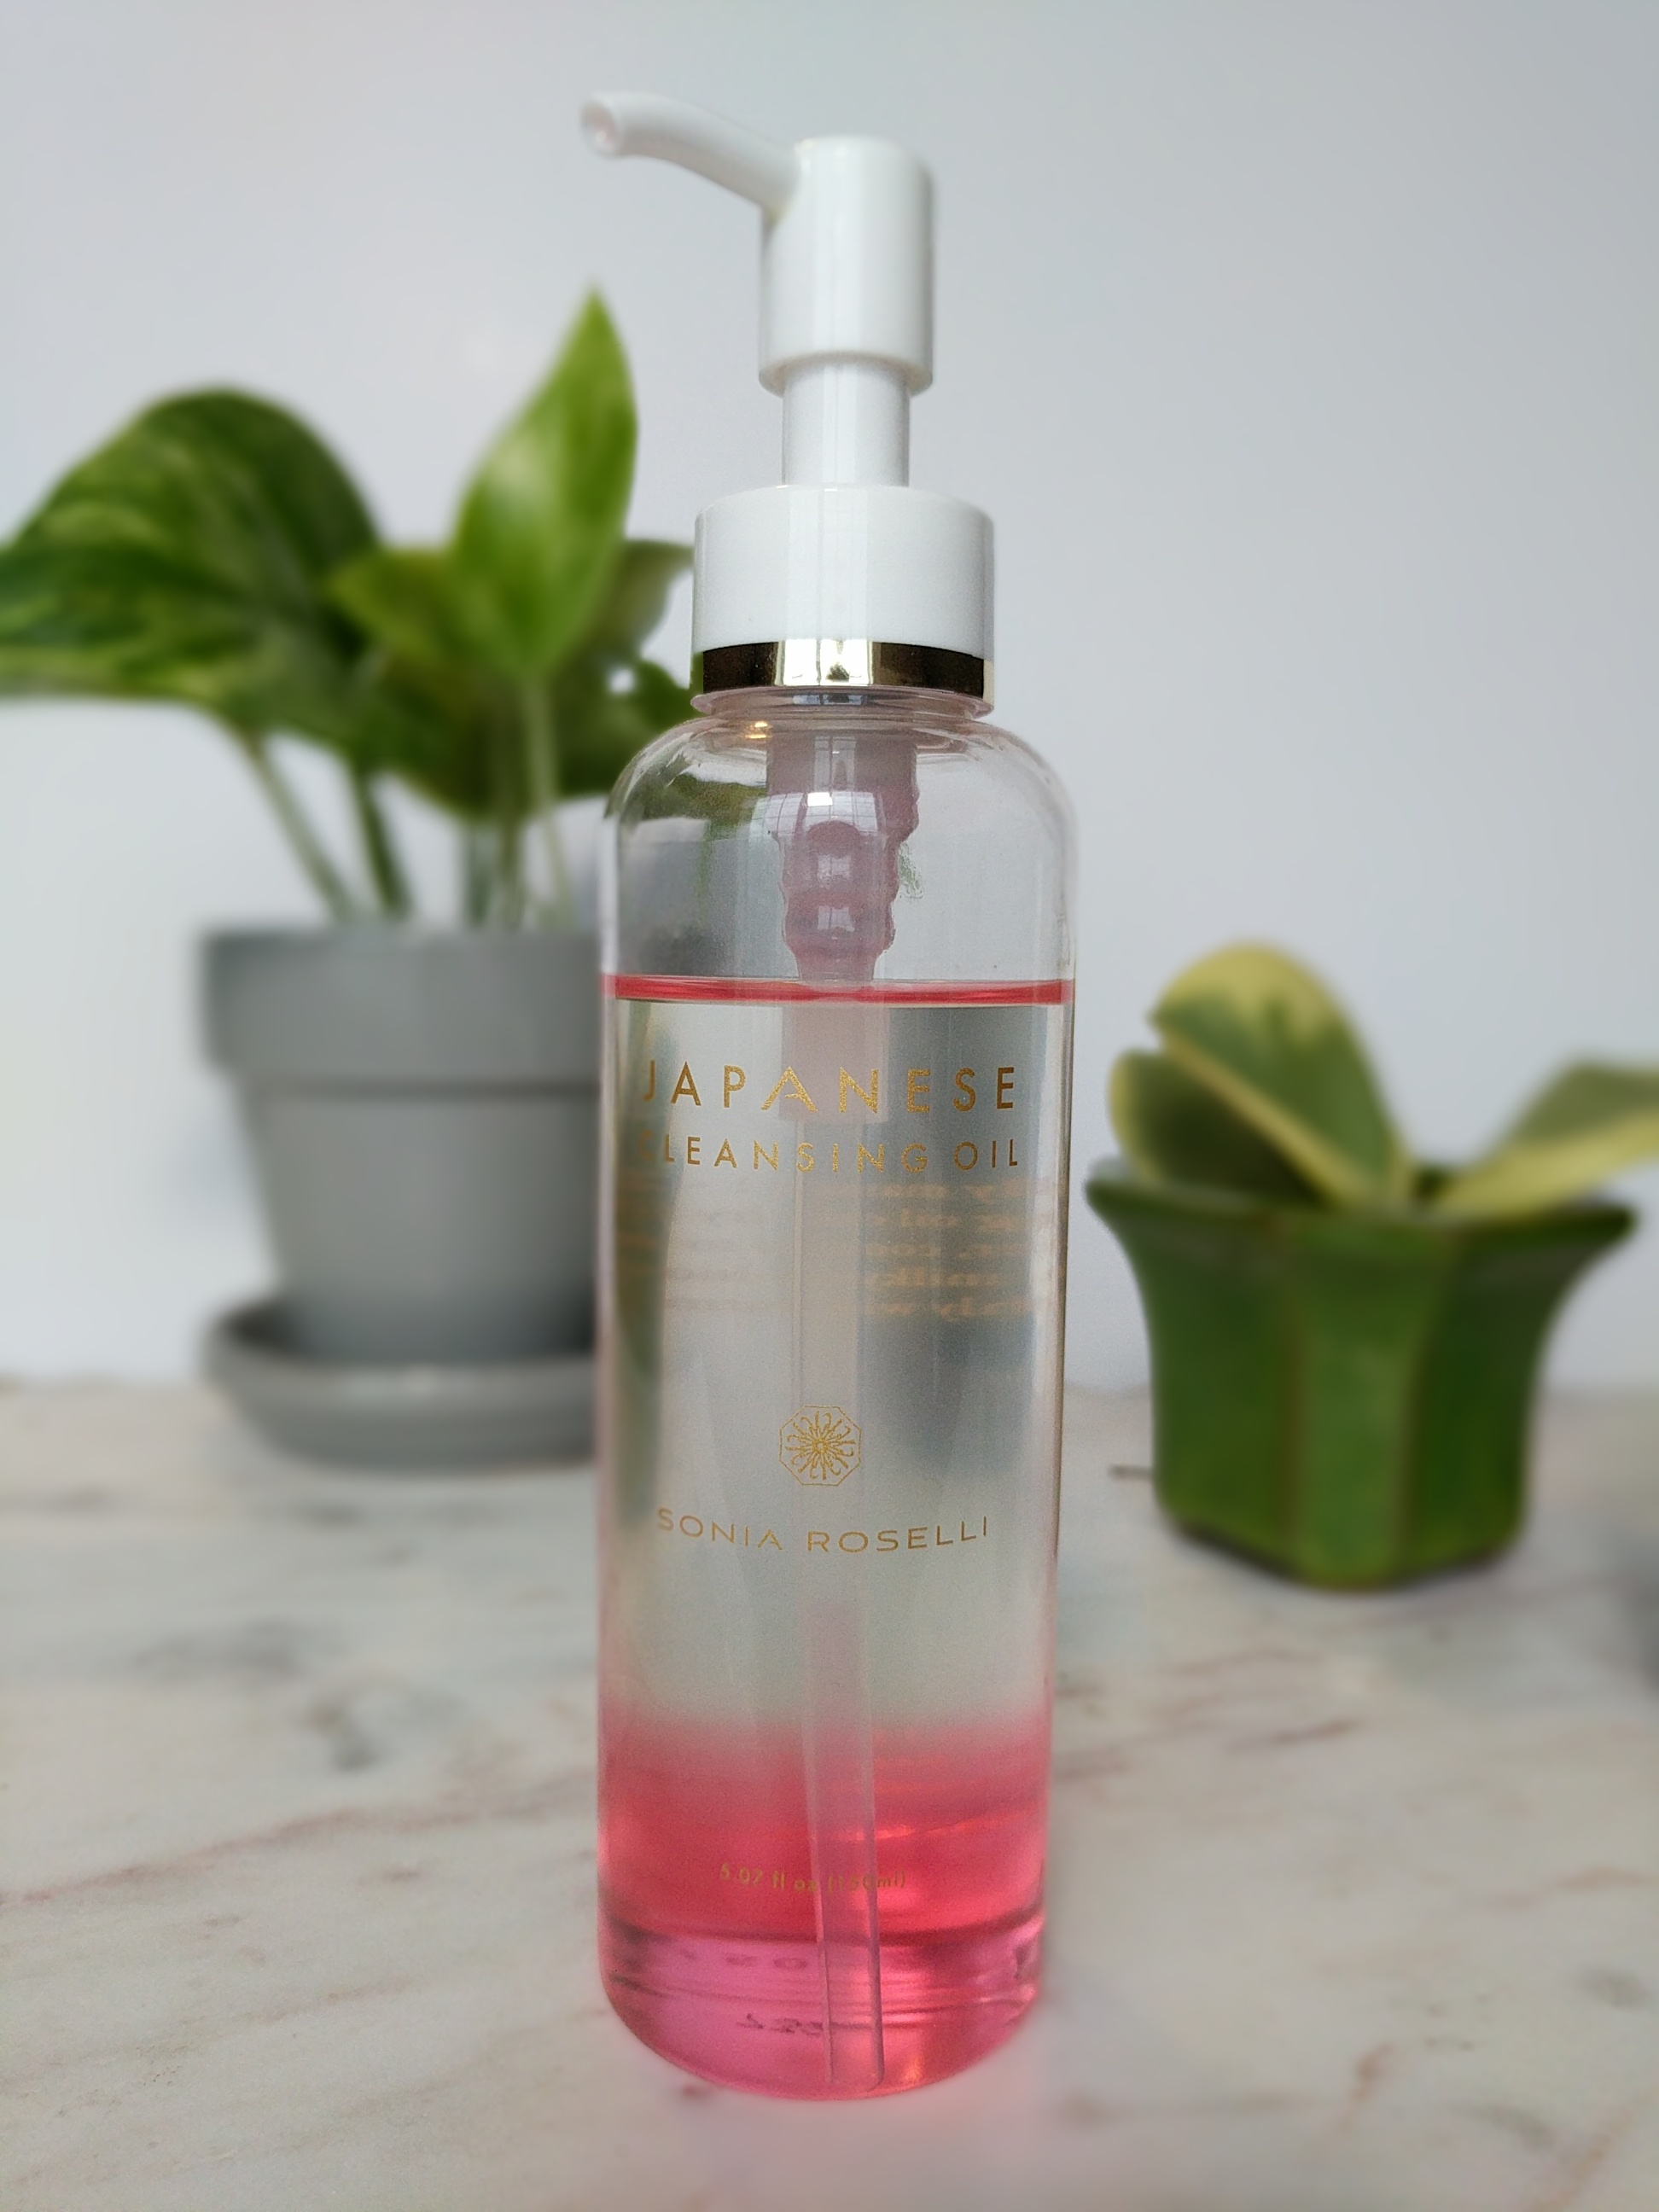 Cleanse - Another bit Sonia Roselli brilliance and my introduction into the world of facial oils! I use a few pumps into my hands and apply to my dry skin, rub it around and rinse off with warm water.